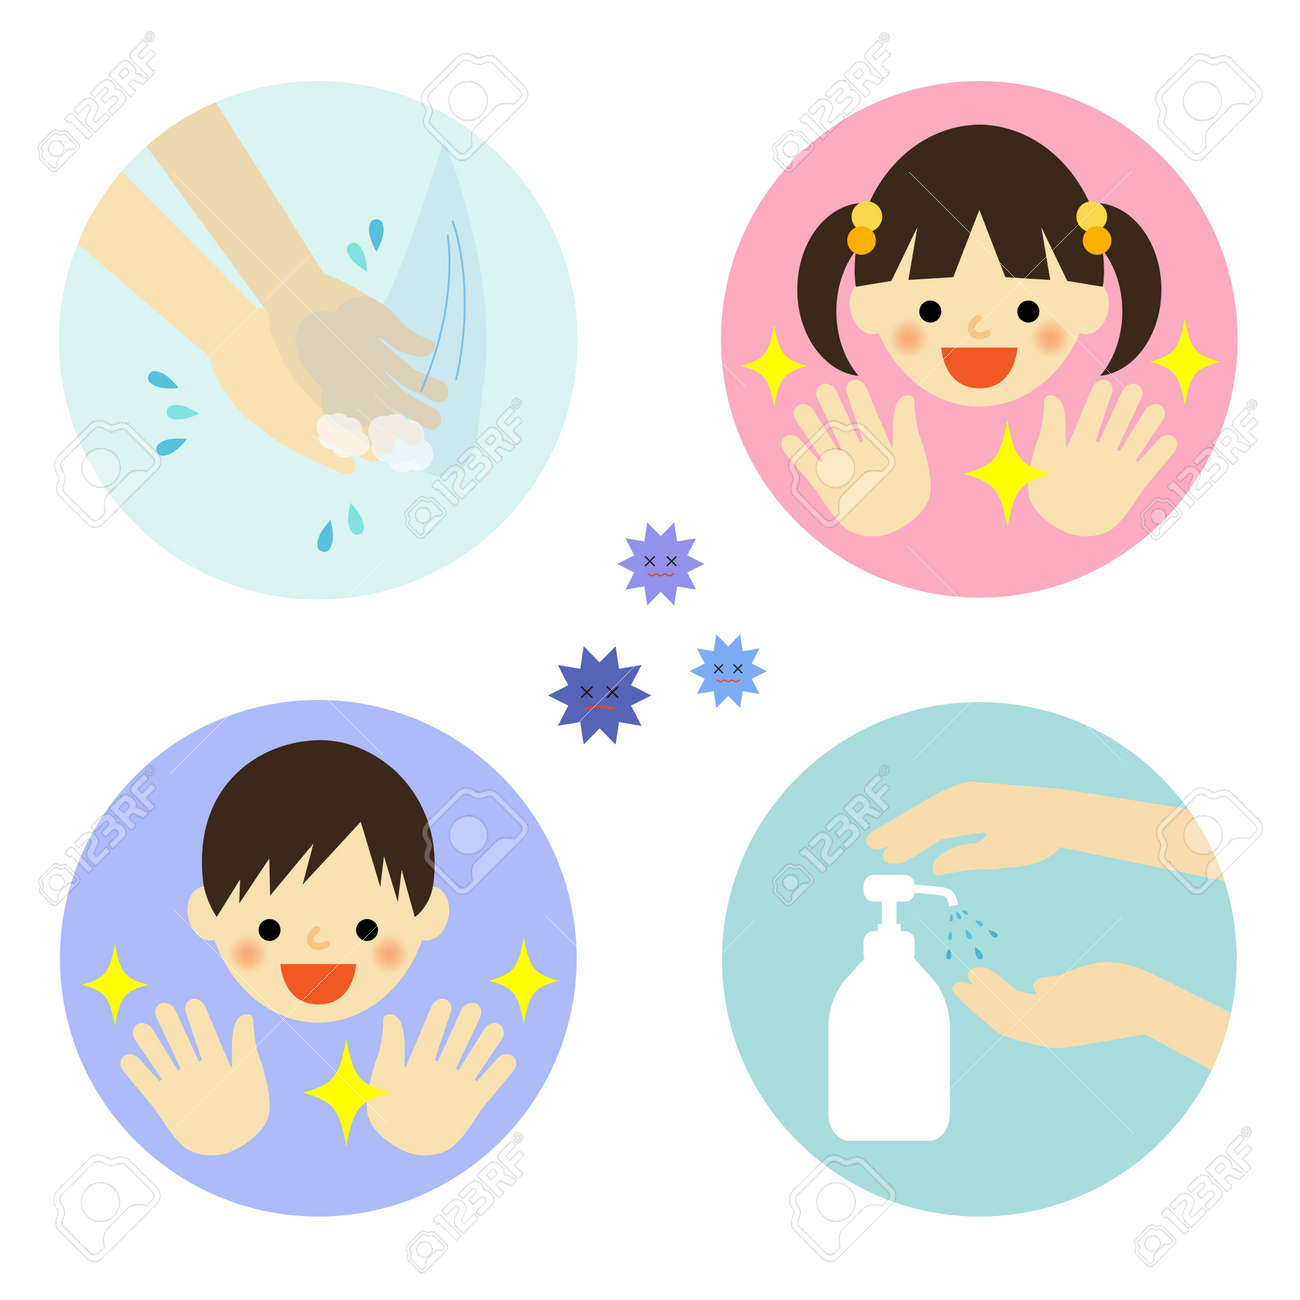 Hand washing with water and alcohol for kids - 45916976